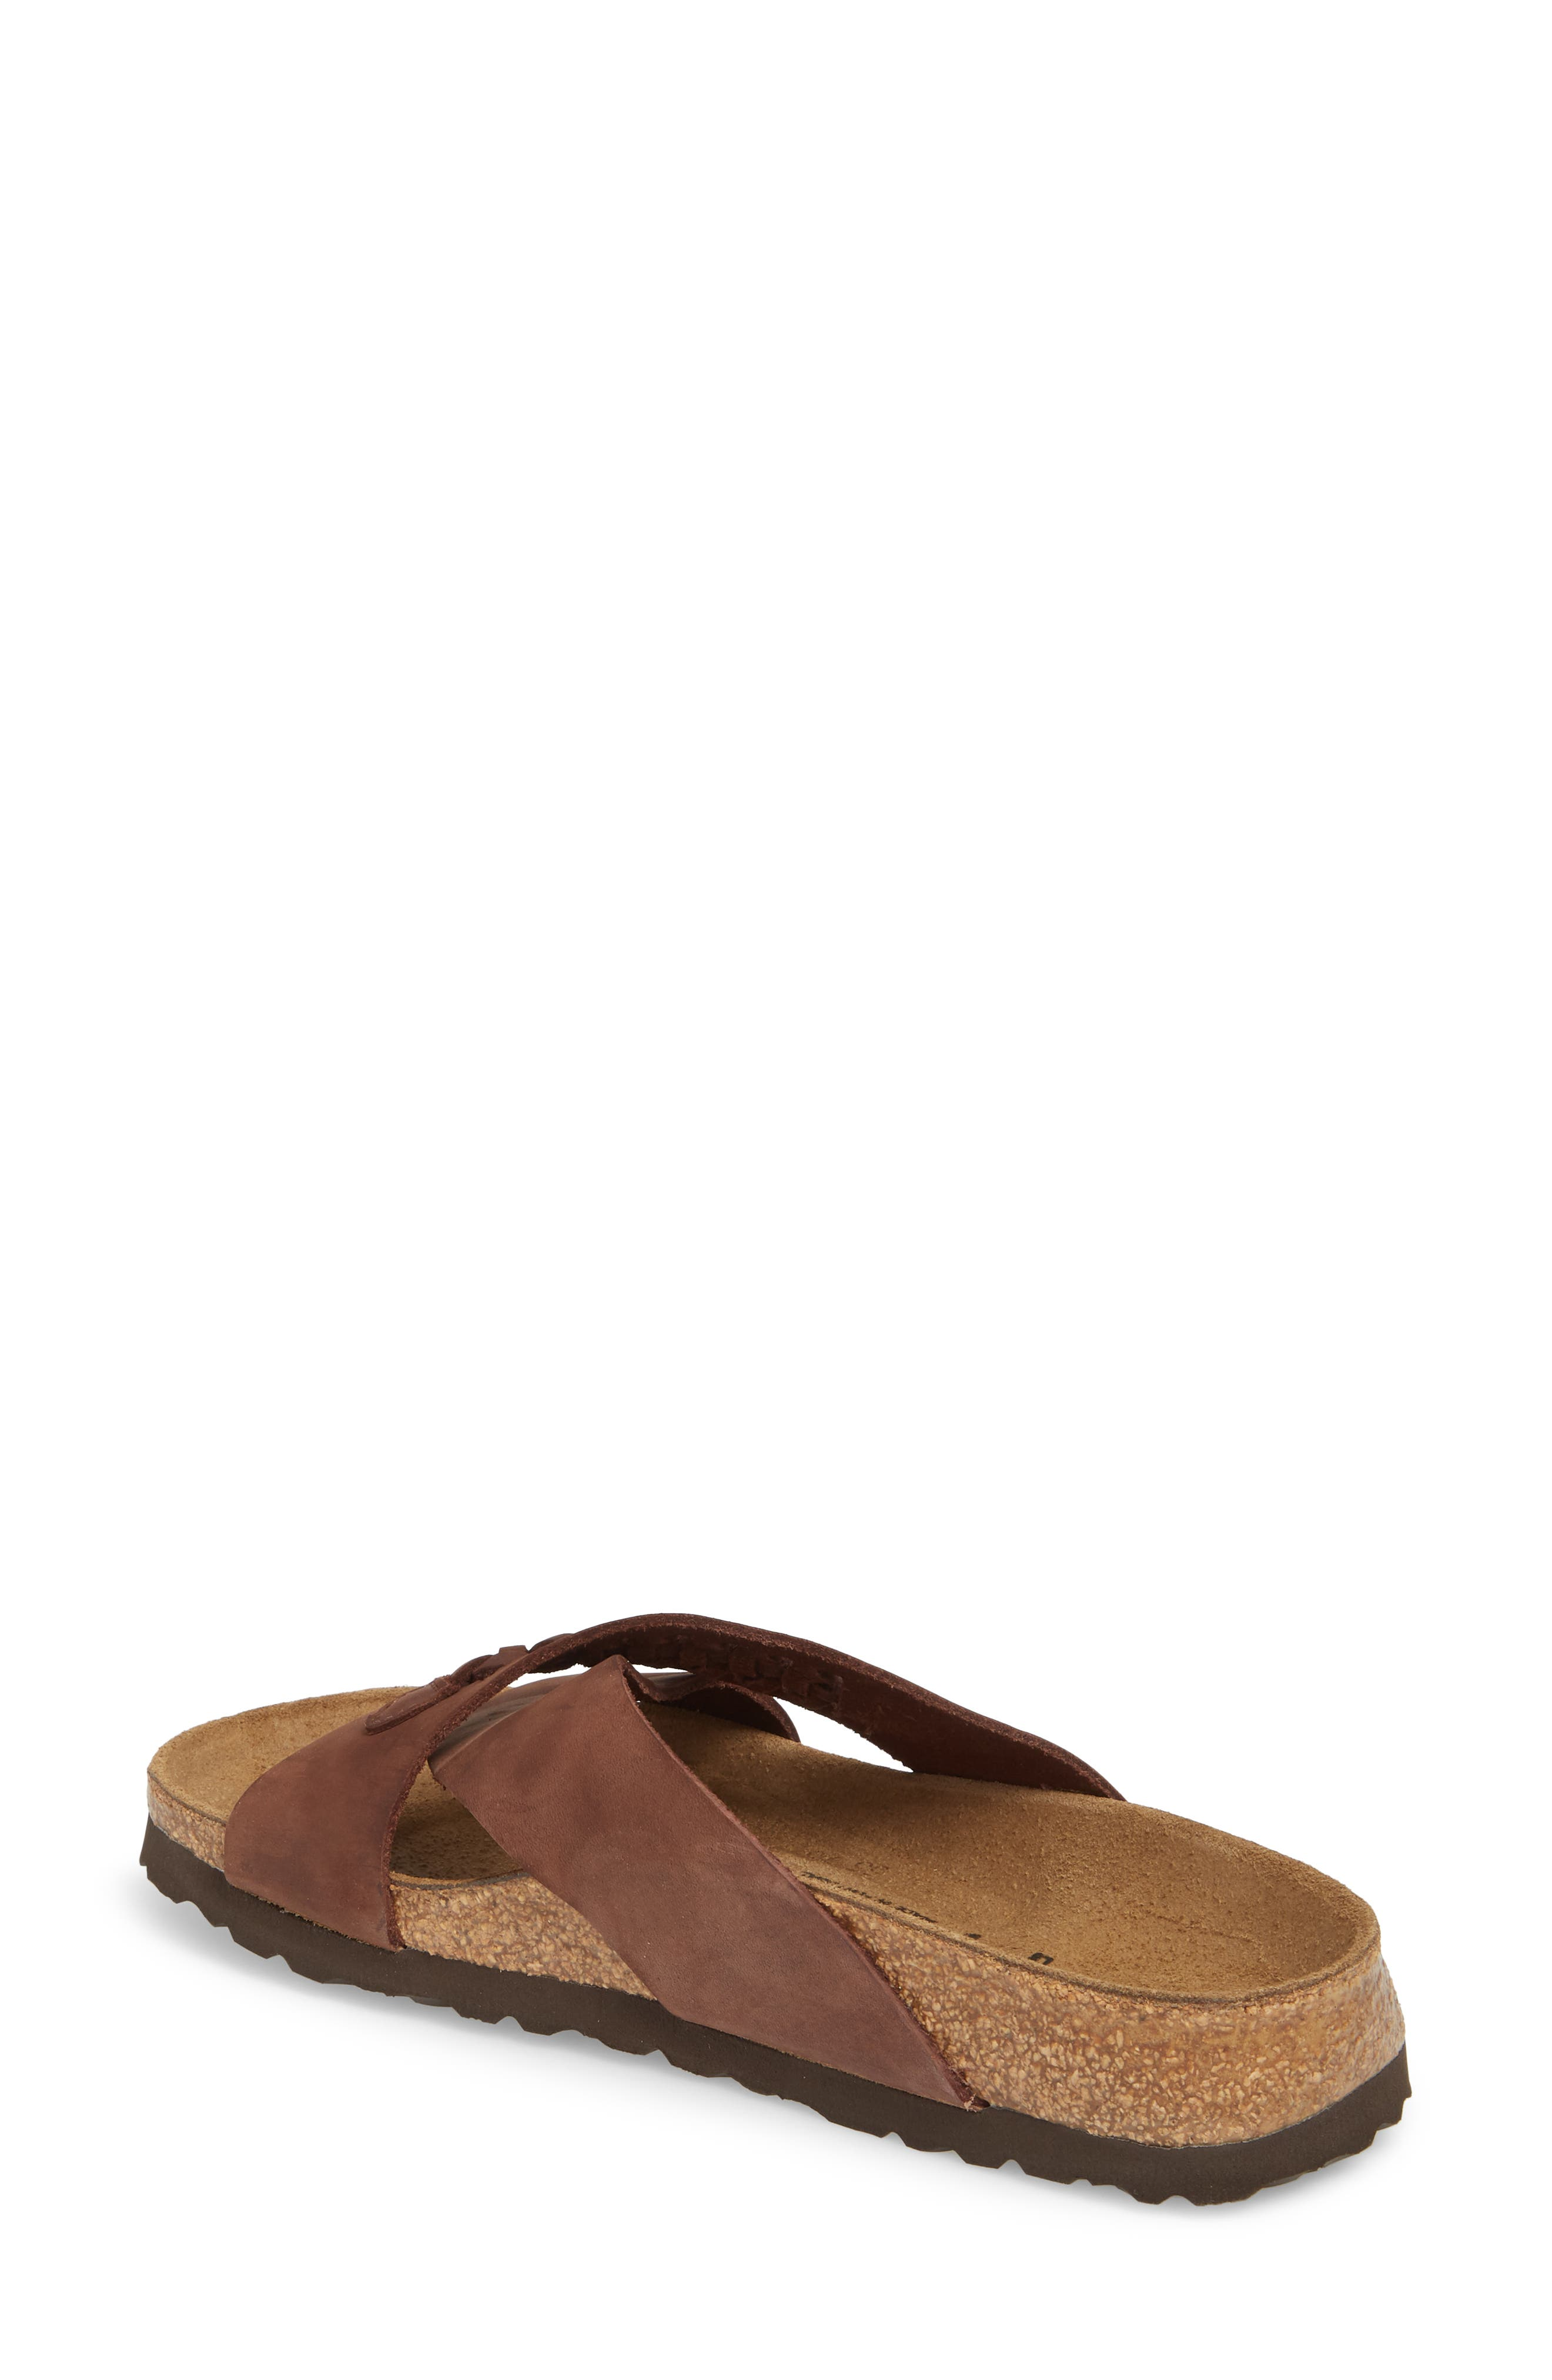 Alternate Image 2  - Papillio by Birkenstock Daytona Slide Sandal (Women)